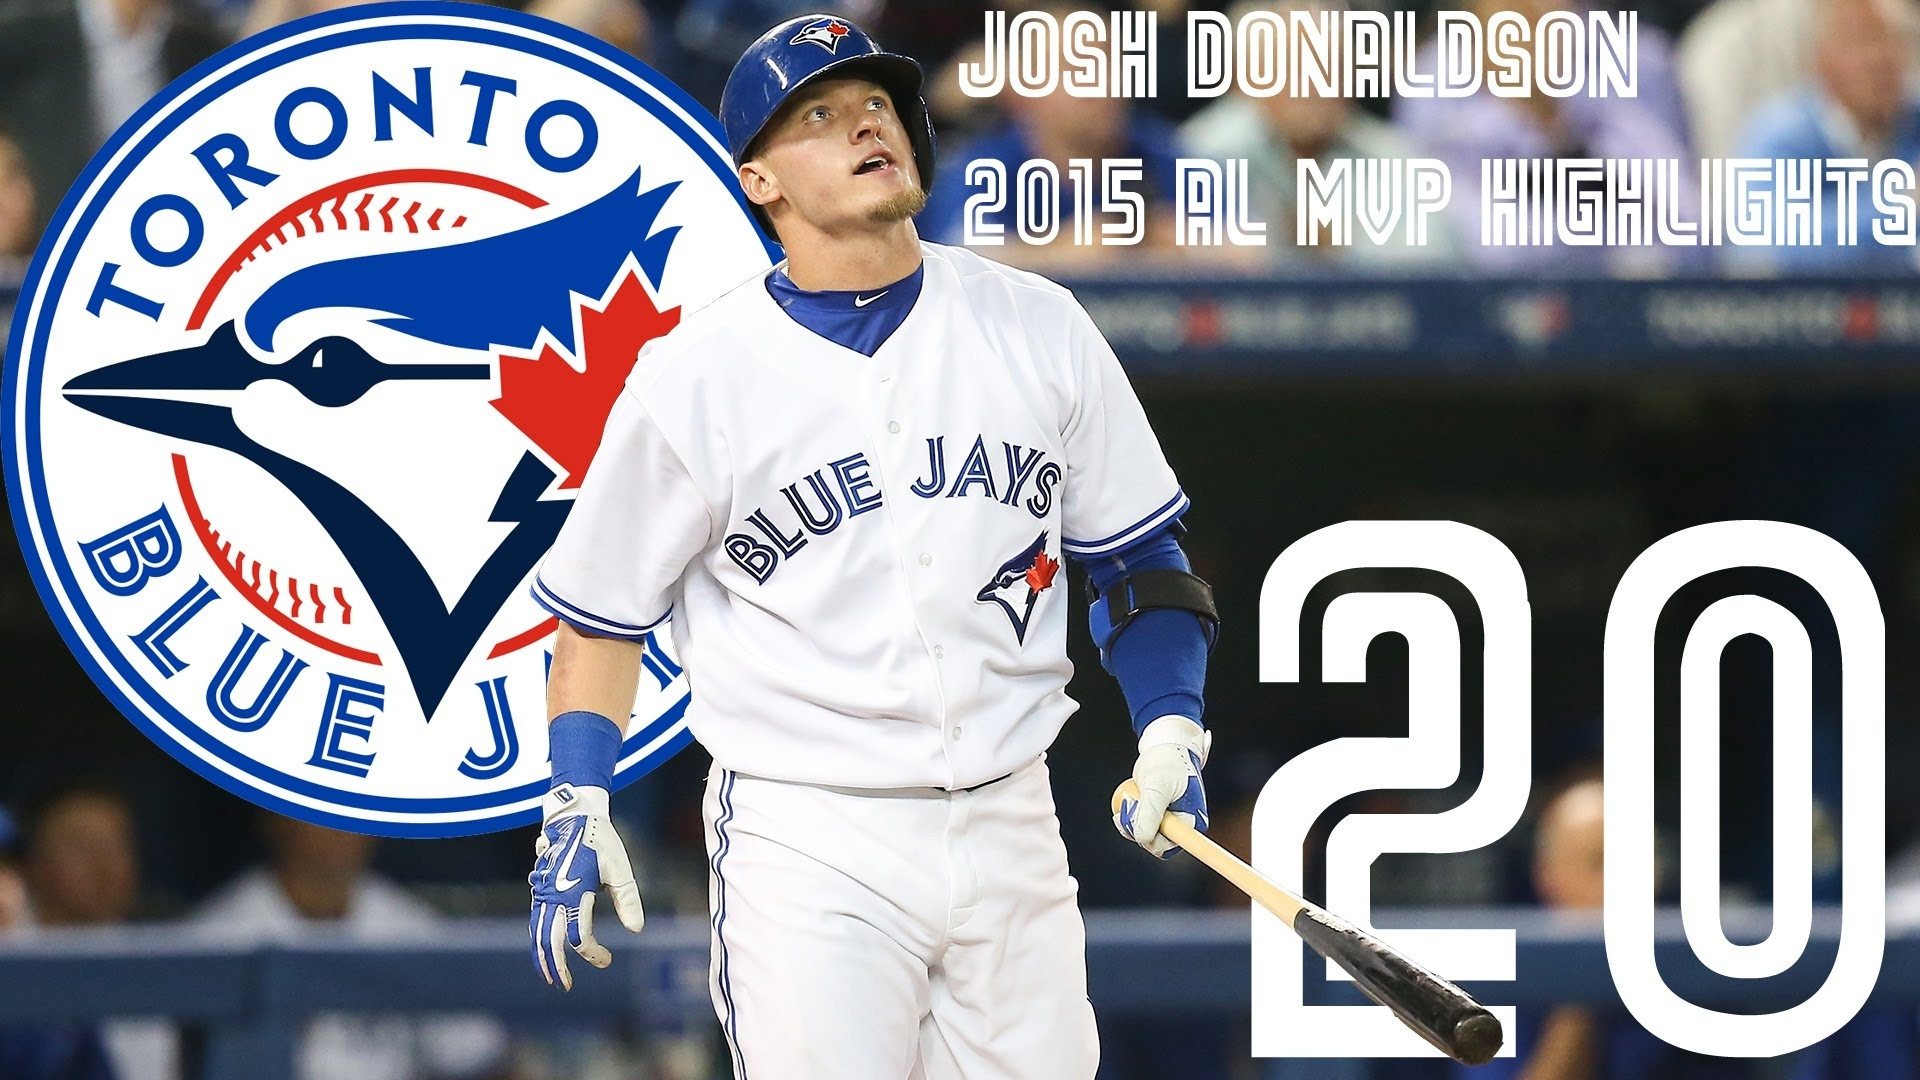 josh donaldson | toronto blue jays | 2015 al mvp highlights mix | hd